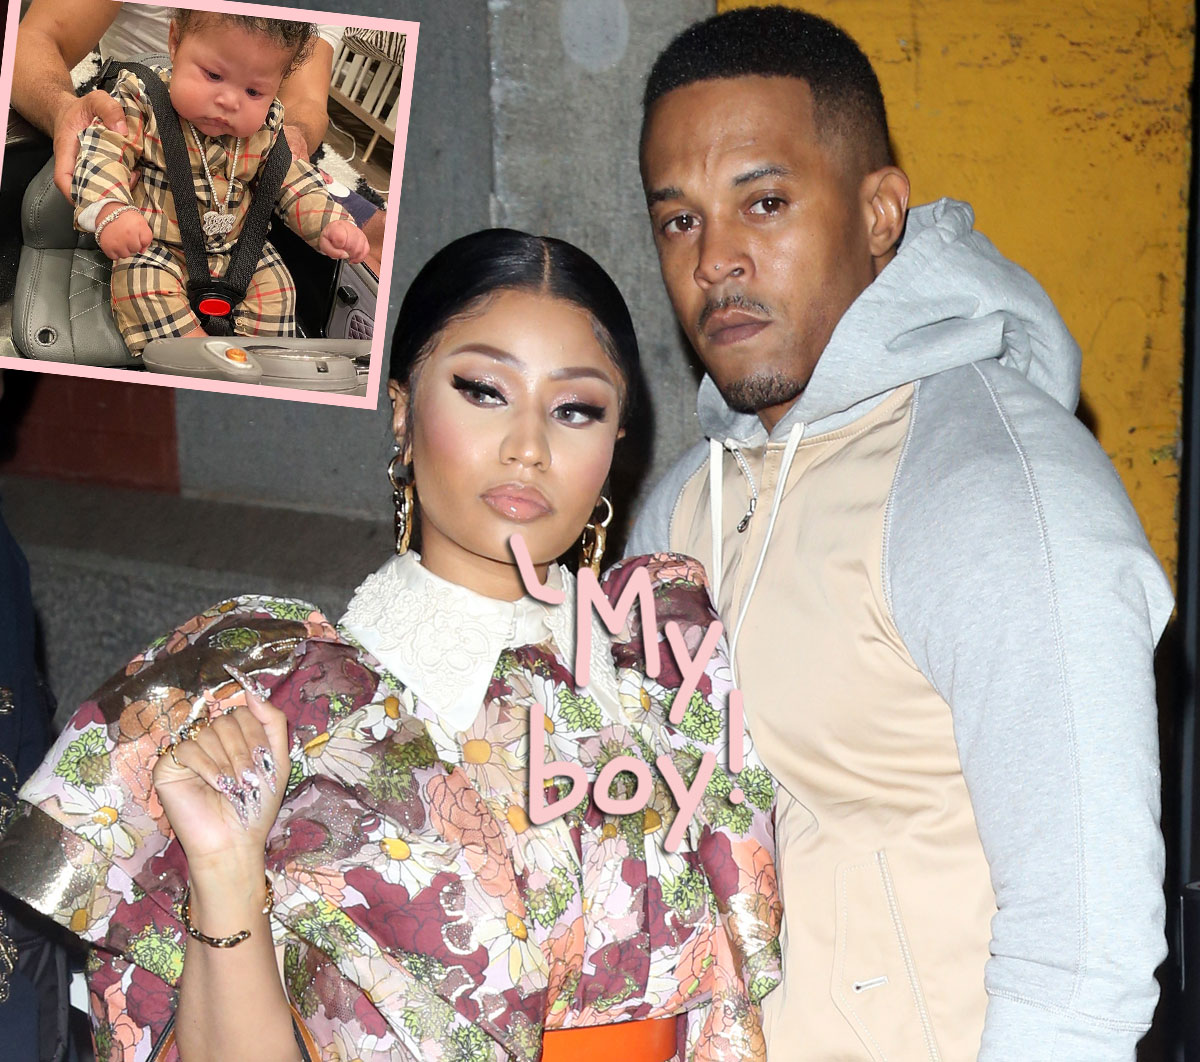 Nicki Minaj Shares New Photos Of Her Son, Thanks Him 'For Choosing Me To Be Your Mama'